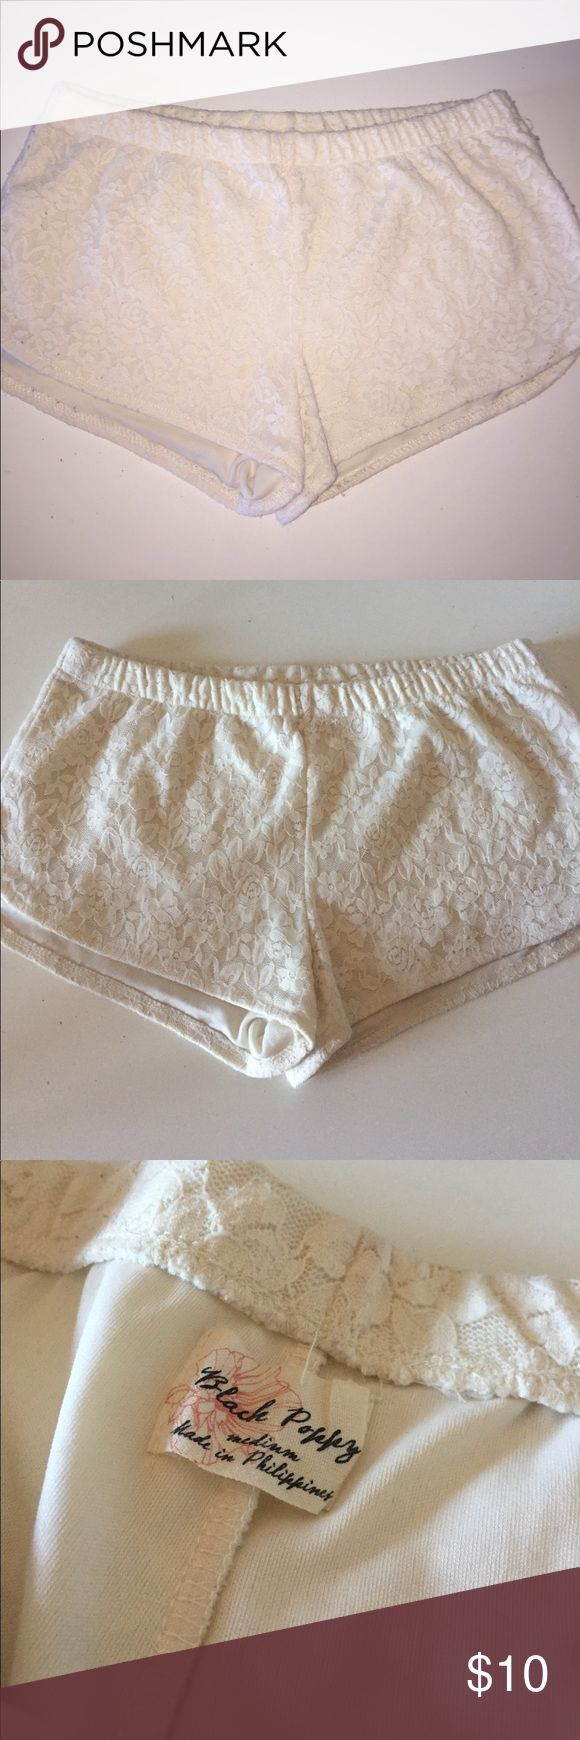 Lace shorts Elastic waist and cream lace detail. Super cute and comfy. Selling because they don't fit me! Offers welcome. black pepper Shorts